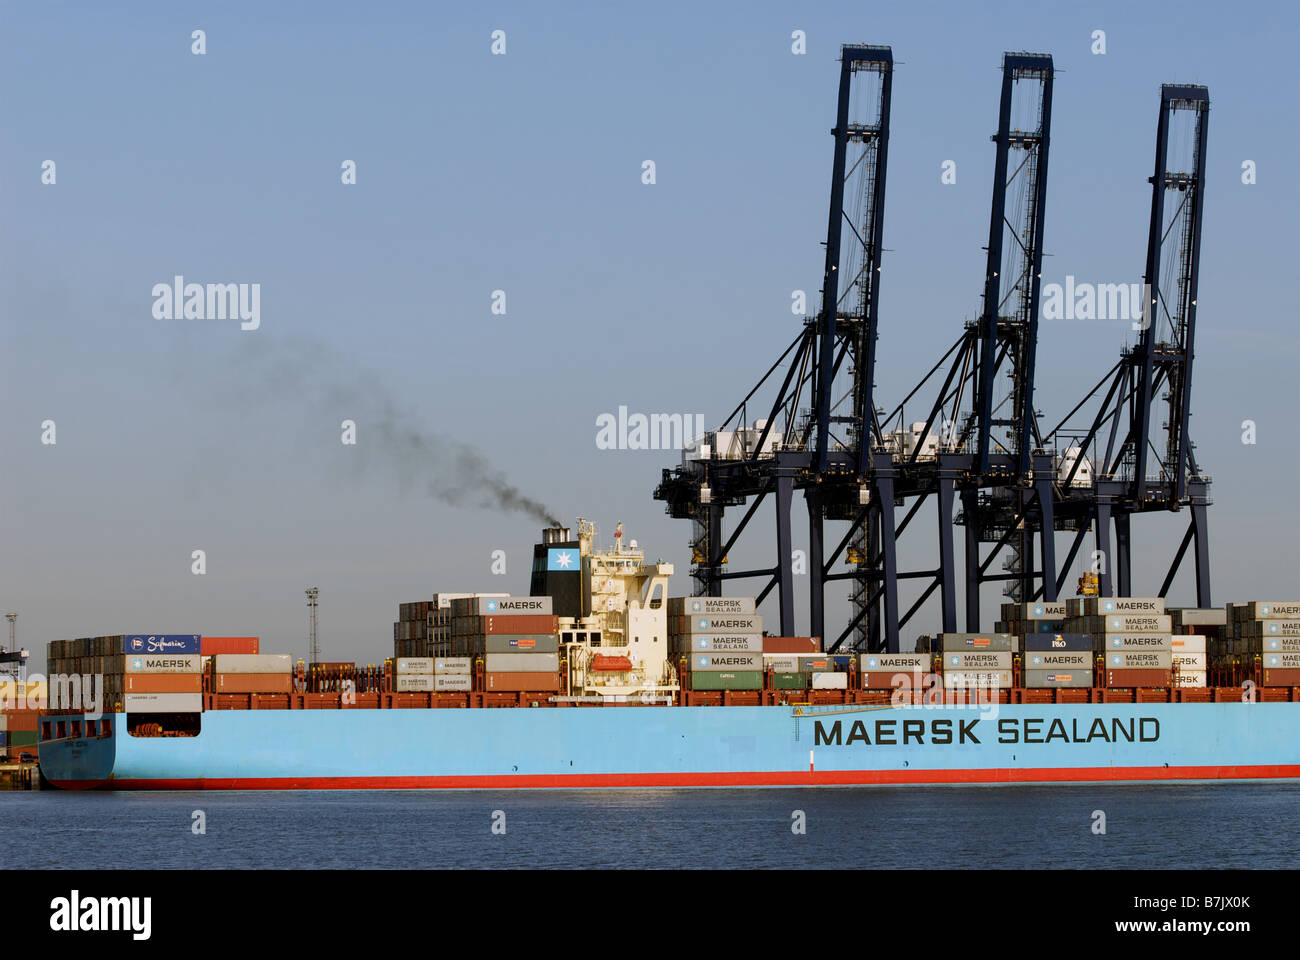 Maersk Sealand 'Michigan' container ship, Port of Felixstowe, Suffolk, UK. - Stock Image